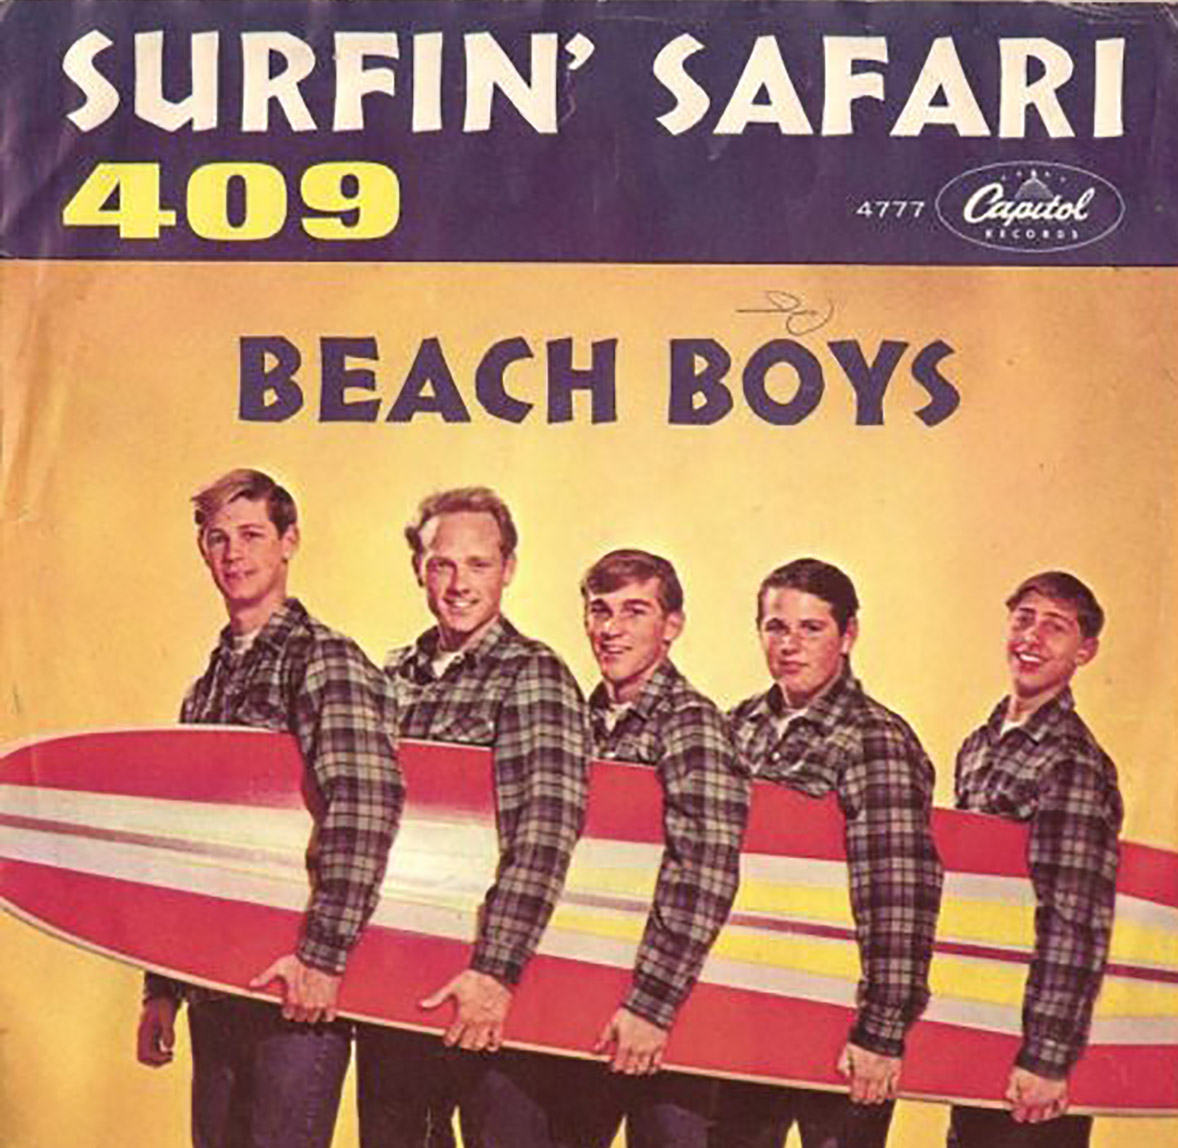 Beach Boys Surfin' Safari and 409